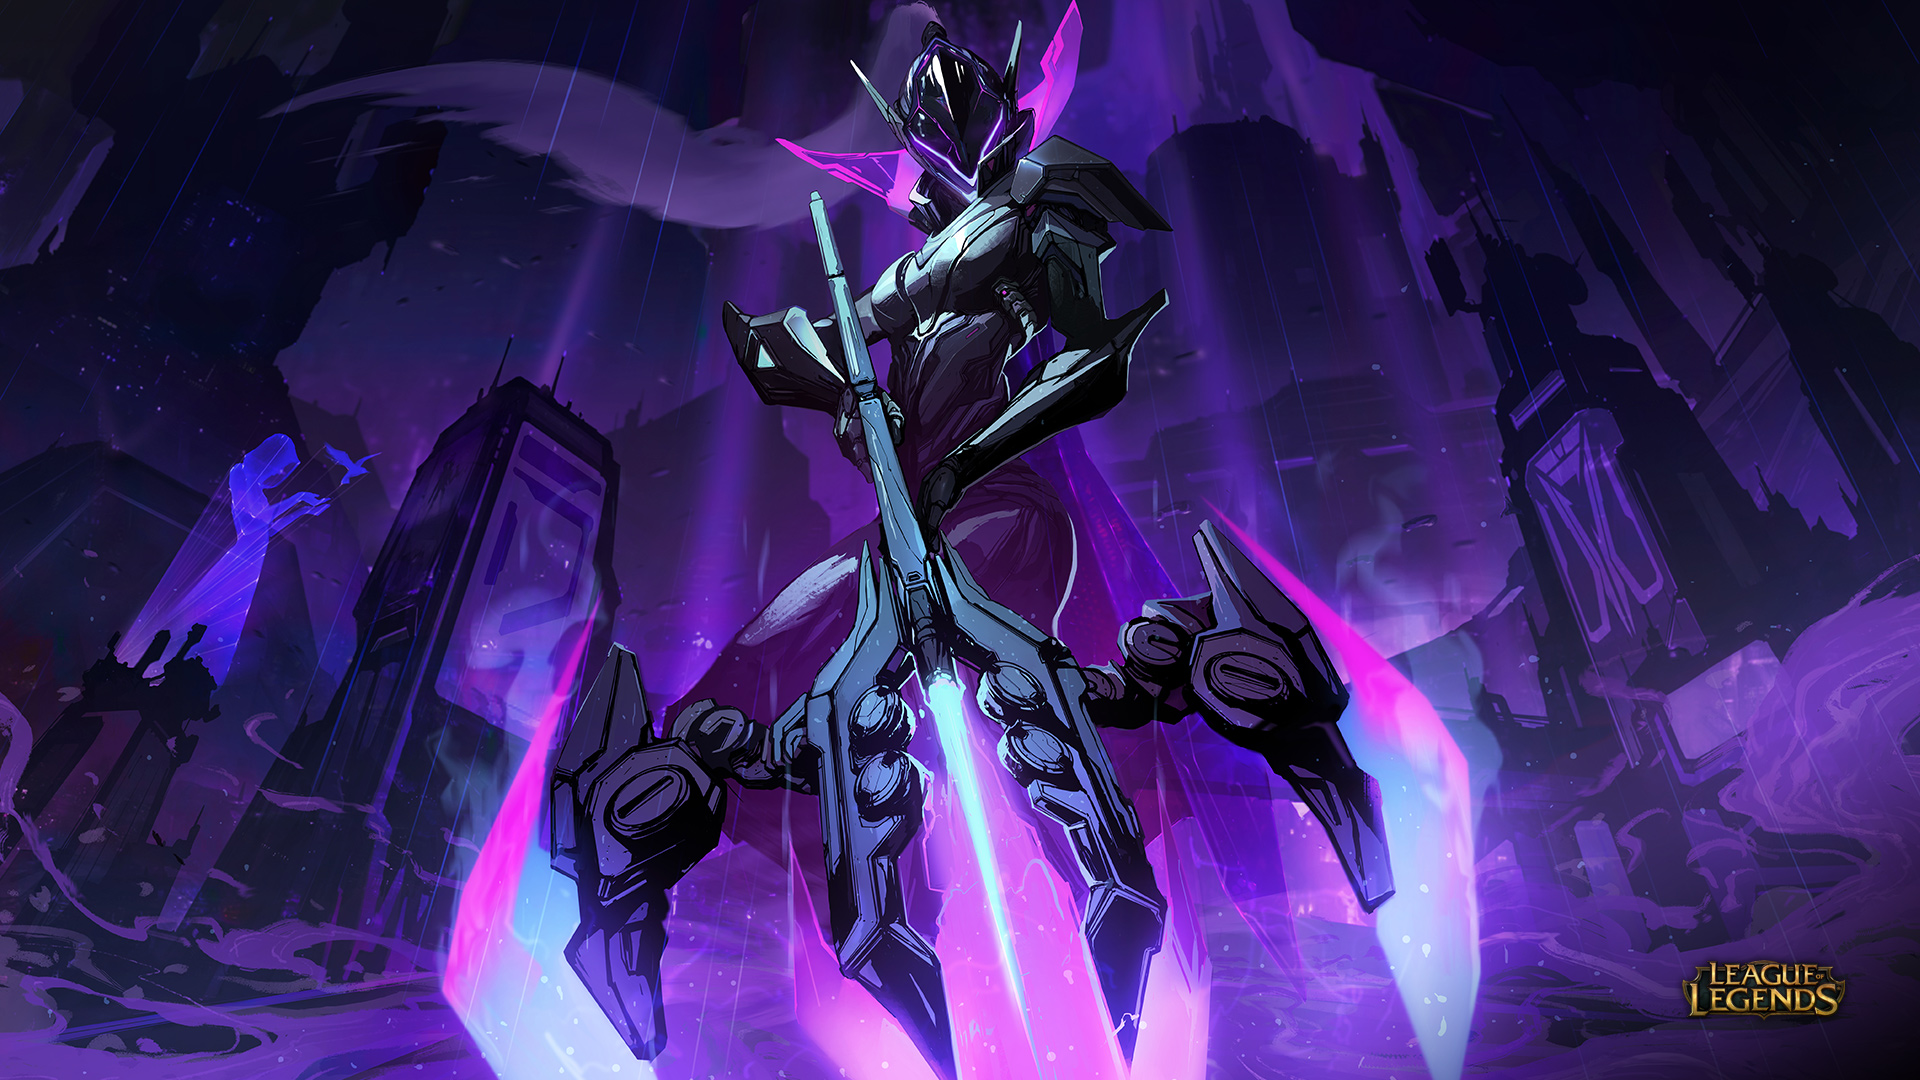 Project Vayne Hd Wallpaper Background Image 1920x1080